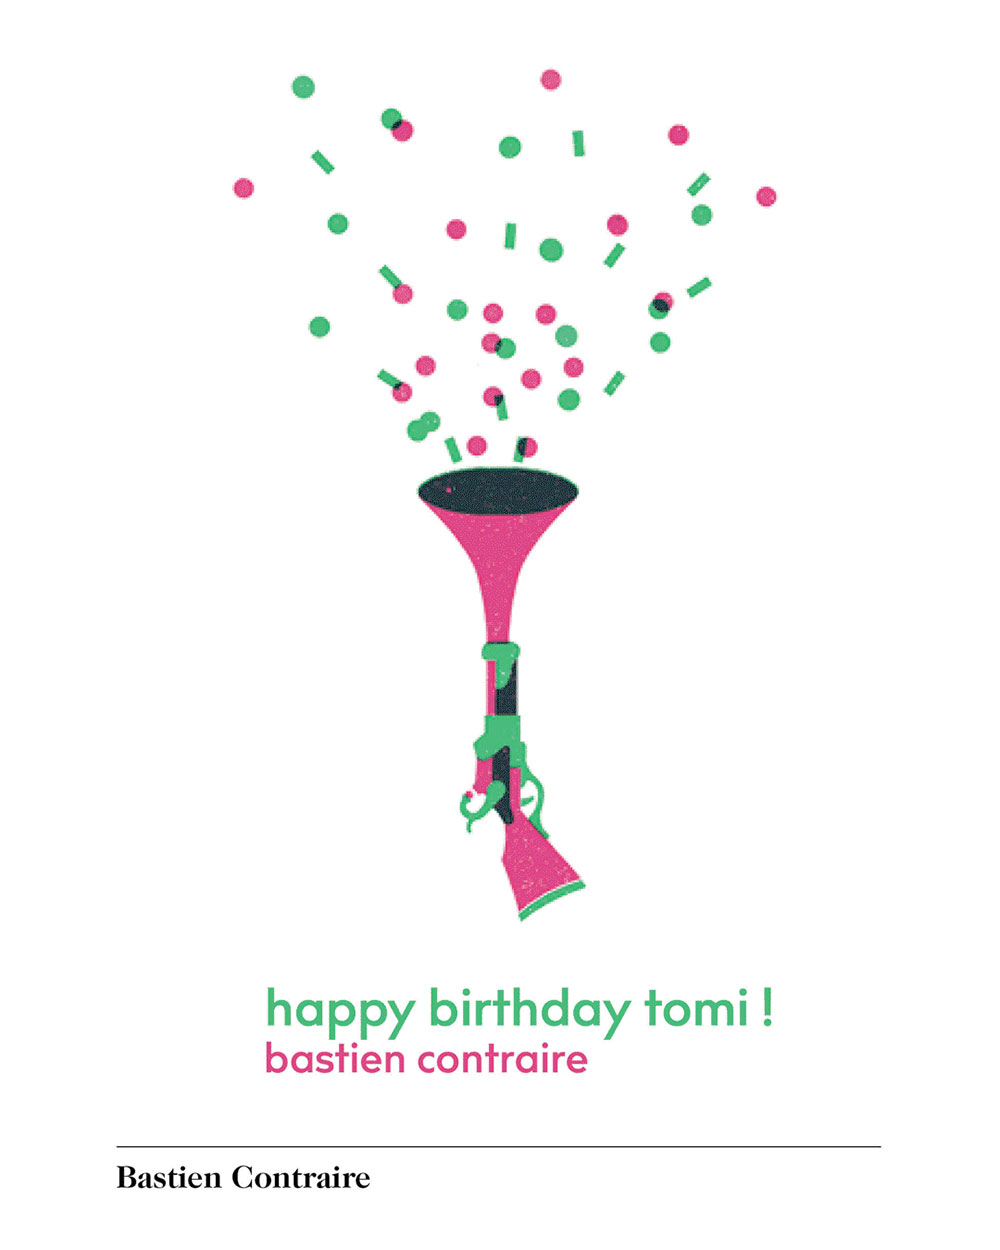 Birthday greeting from Bastien Contraire, from http://www.phaidon.com/CelebrateTomi